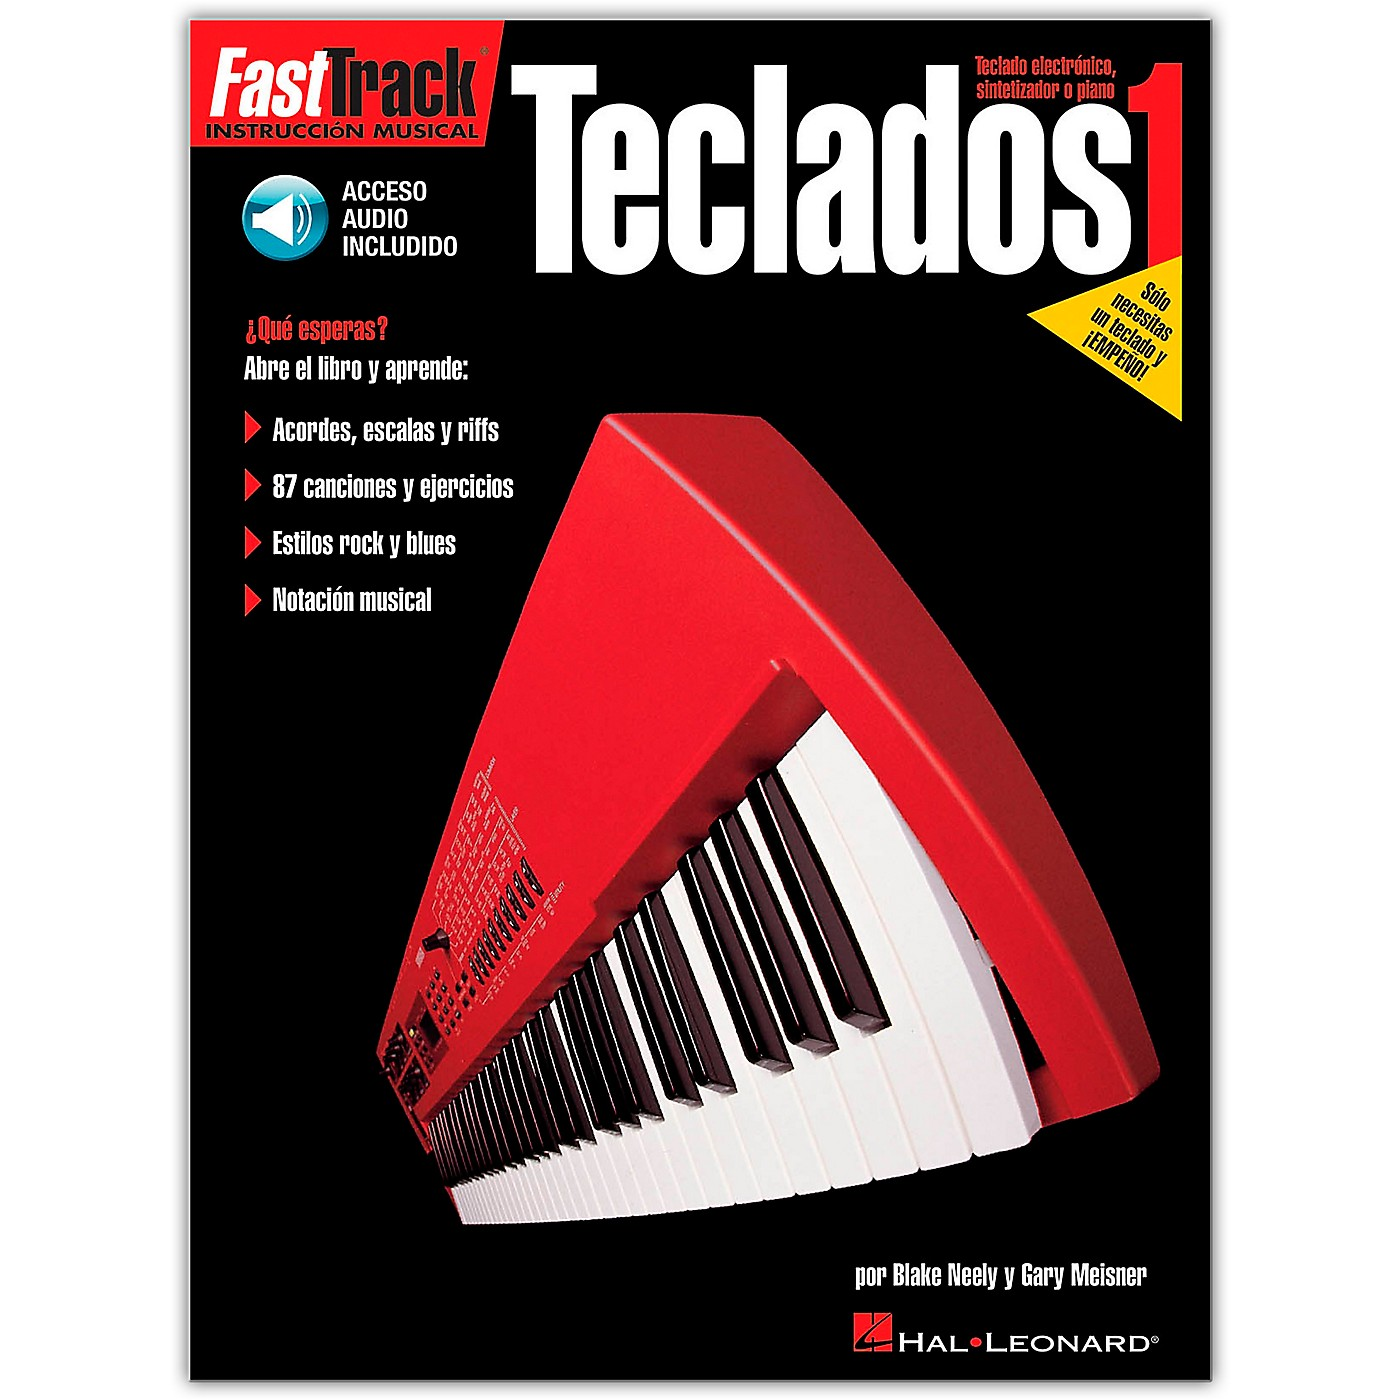 Hal Leonard Fasttrack Keyboard Method Book 1 - Spanish Edition (Book/Online Audio) thumbnail